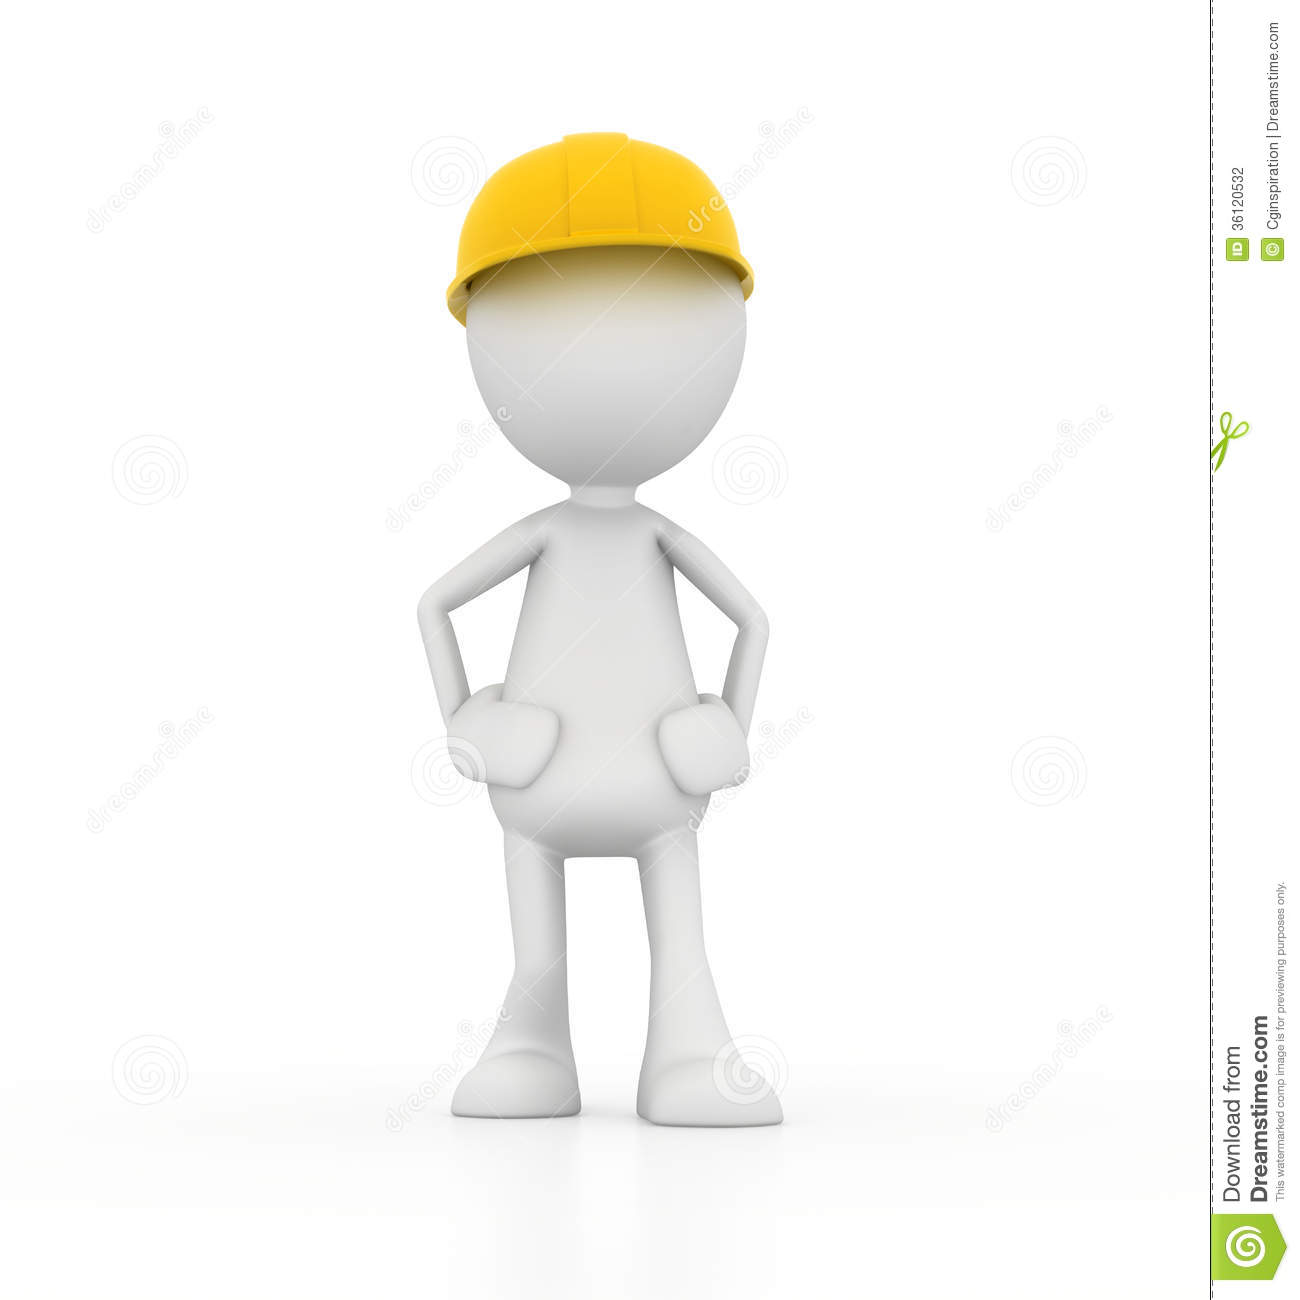 clipart worker - photo #36